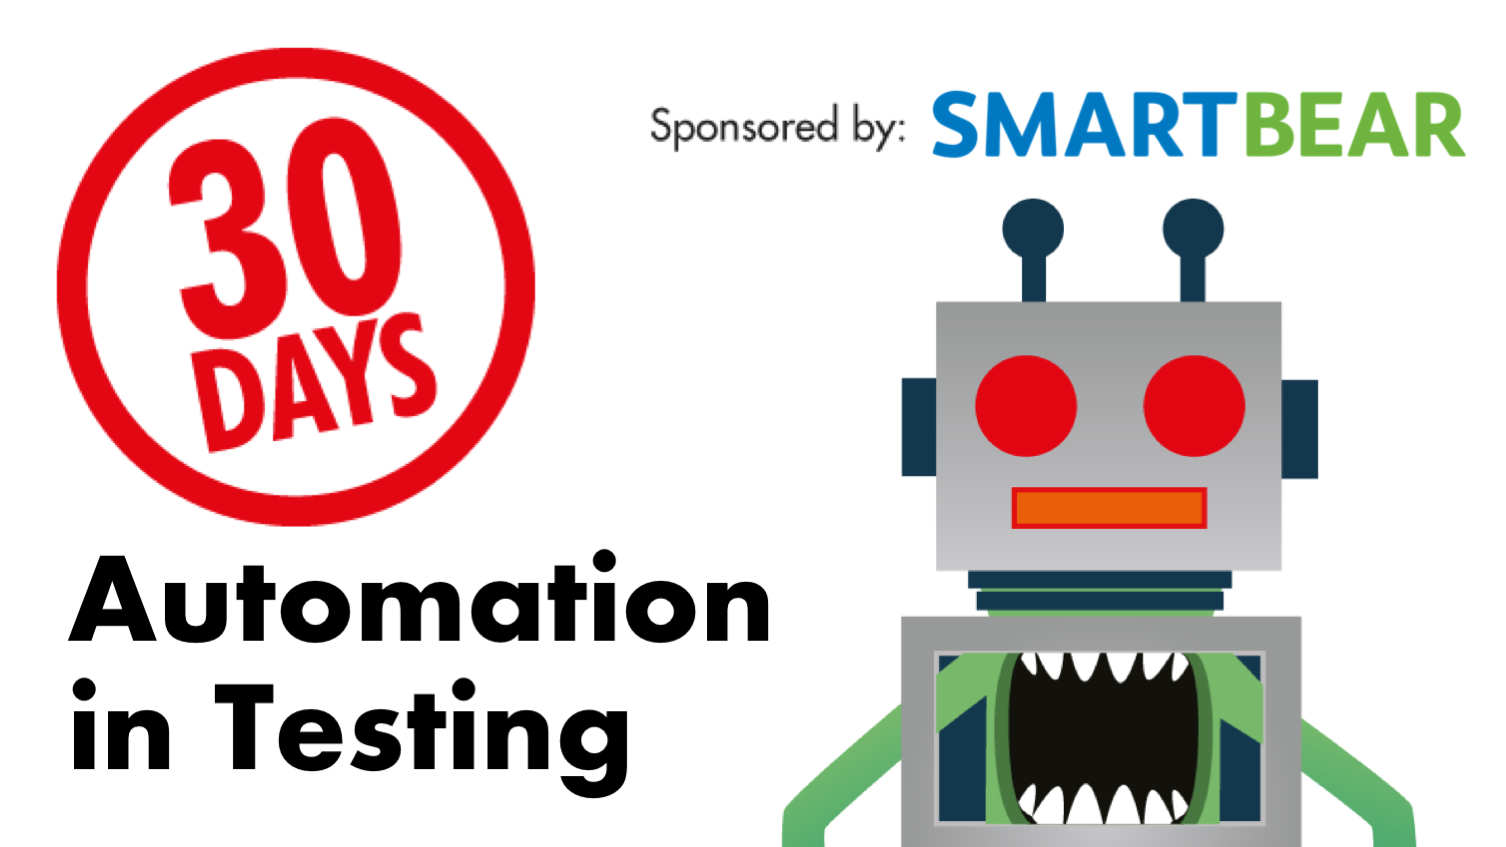 30 Days of Automation in Testing